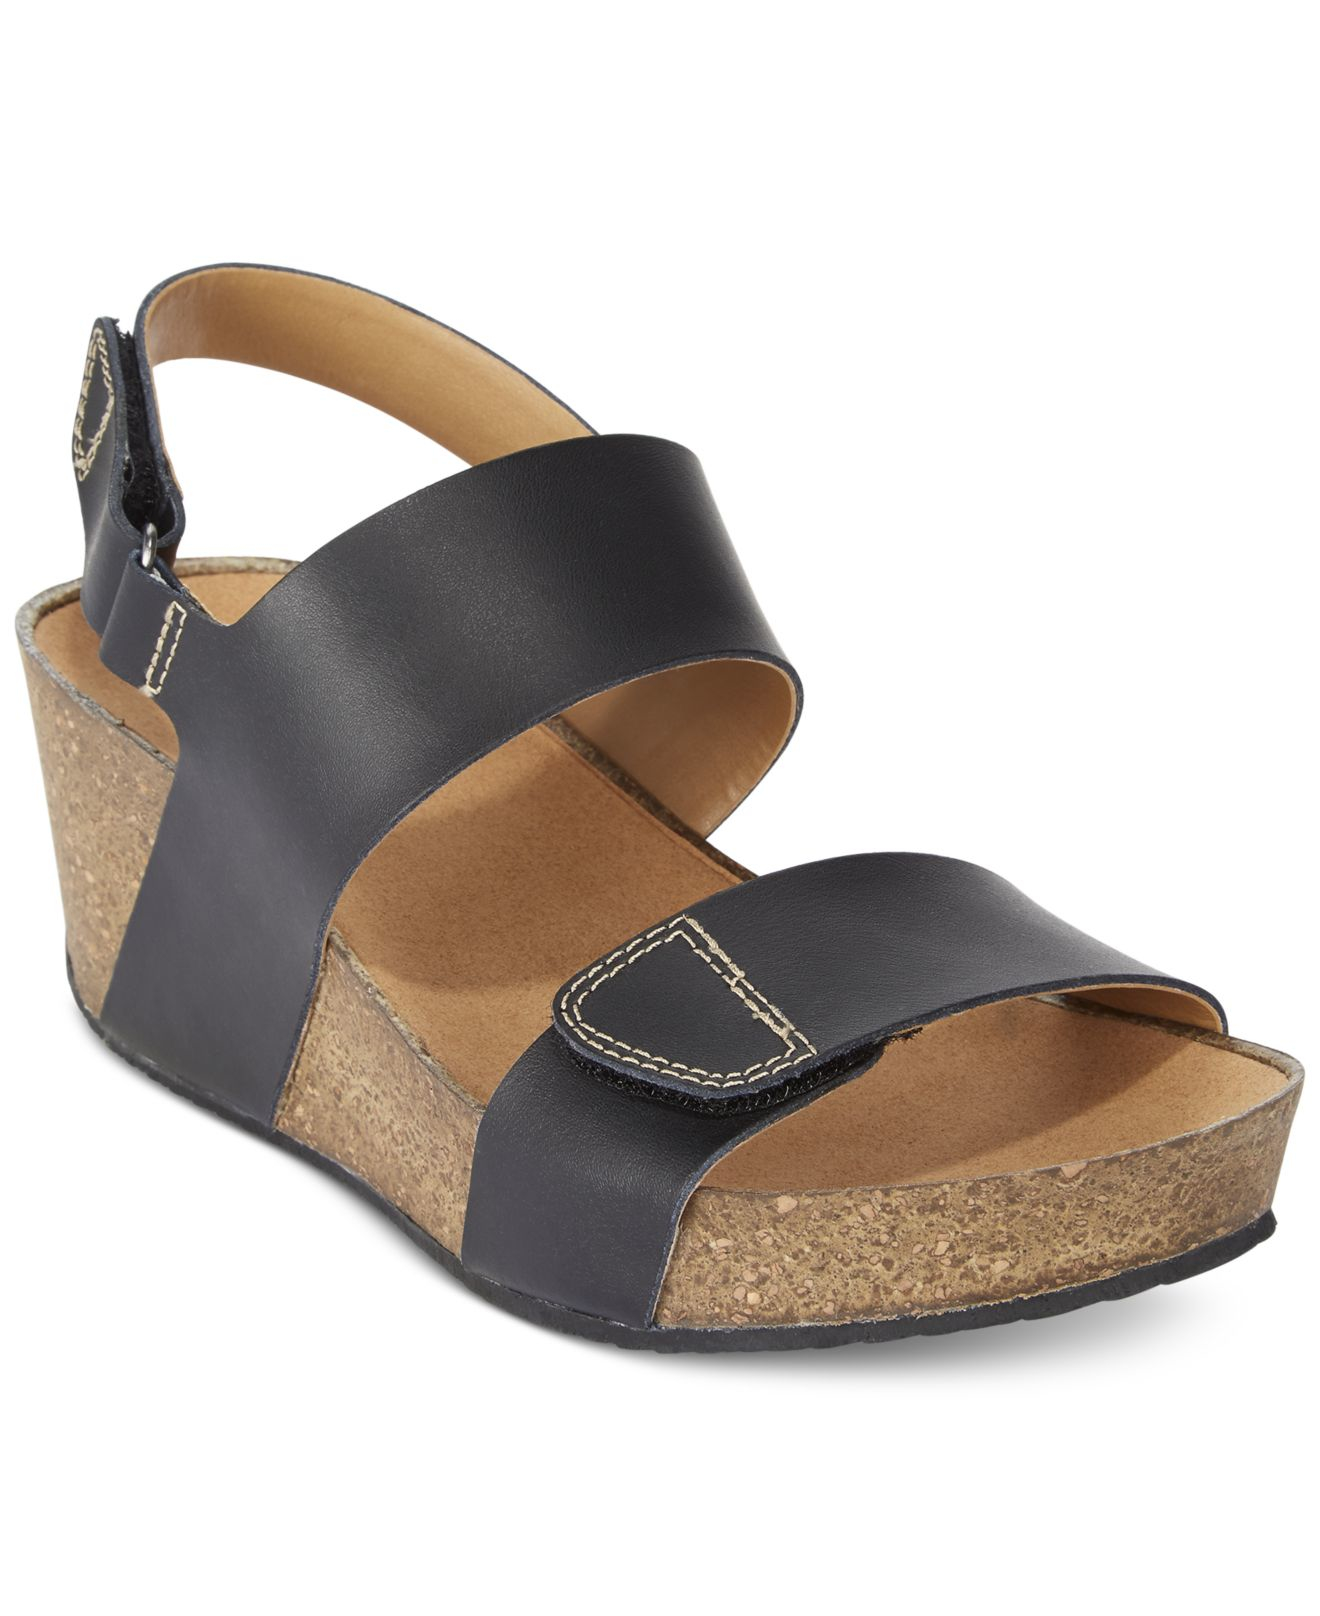 e1b306f59bb9 Lyst - Clarks Collection Women s Auriel Fin Sandals in Black